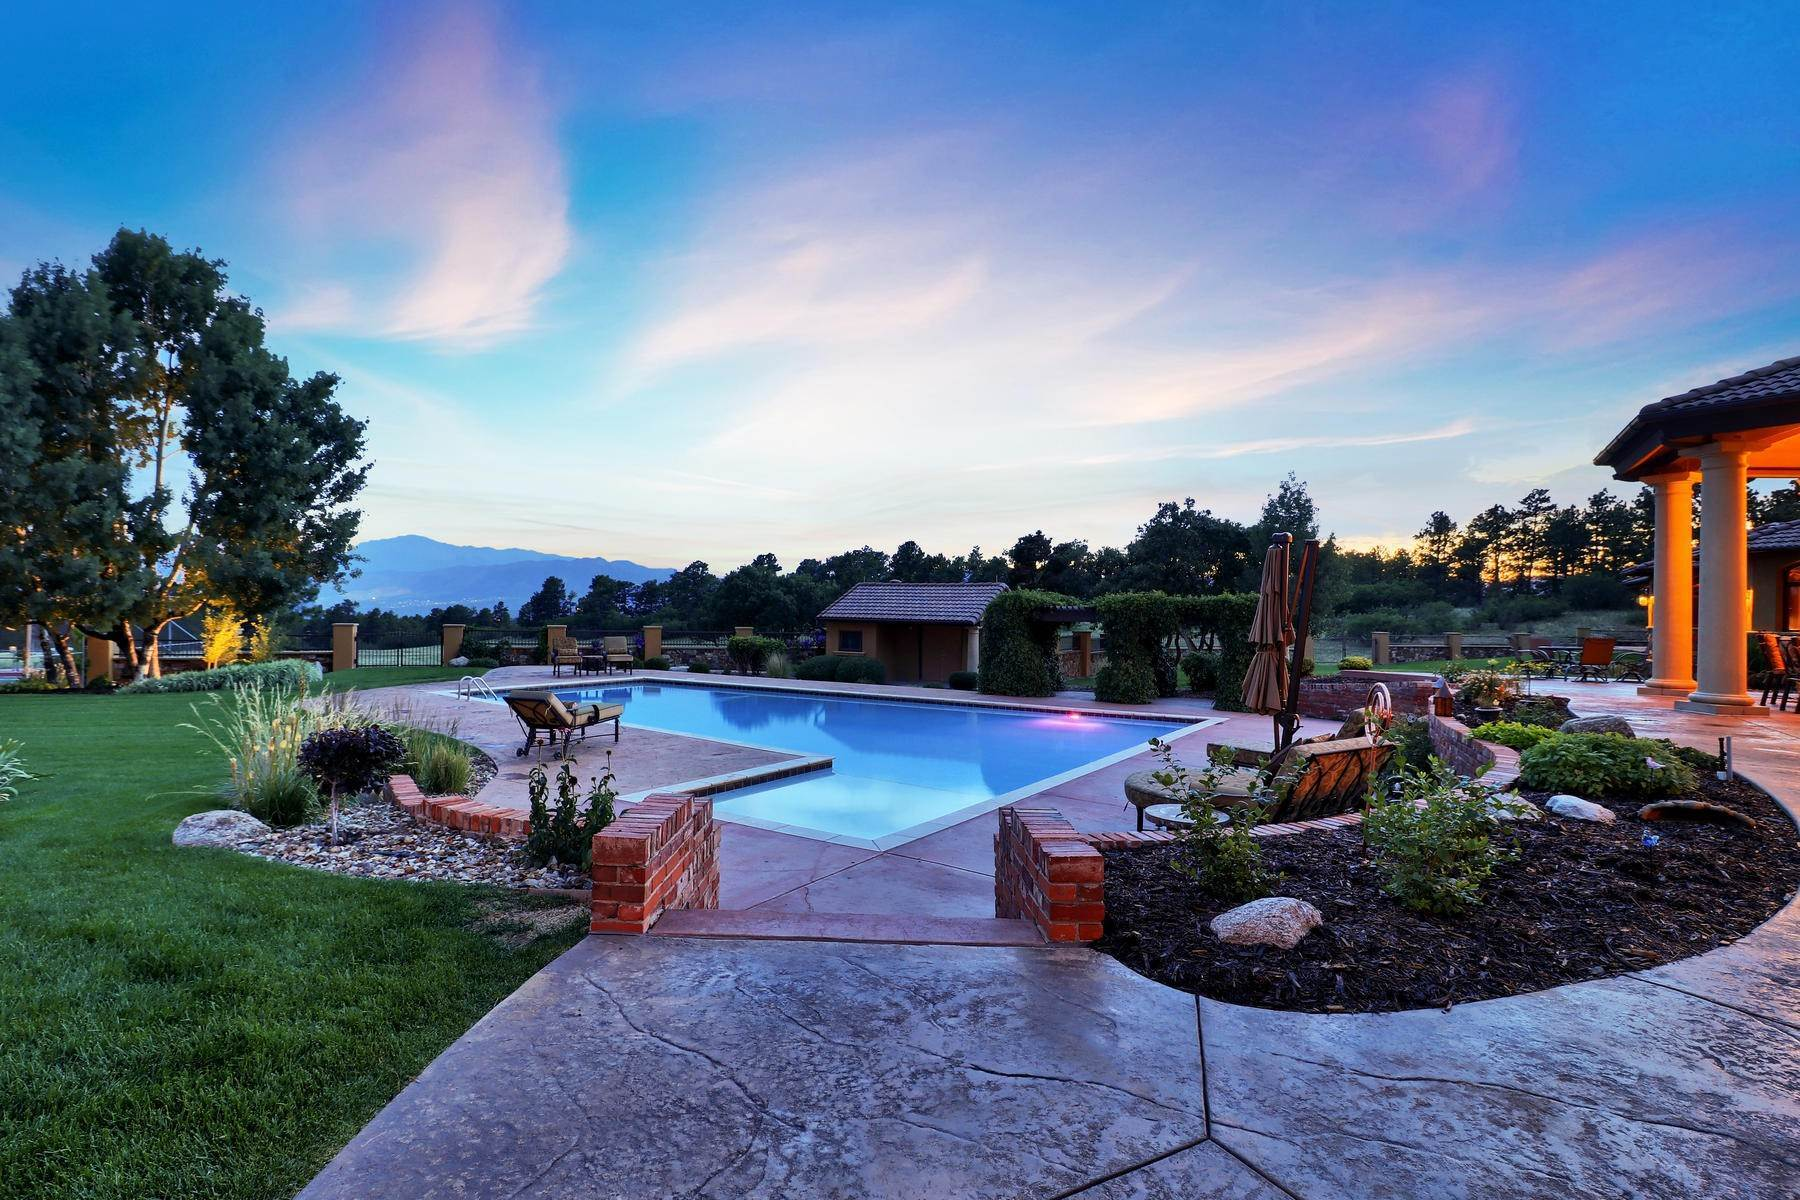 Property for Active at Tuscan Estate 12795 Oak Cliff Way Colorado Springs, Colorado 80908 United States